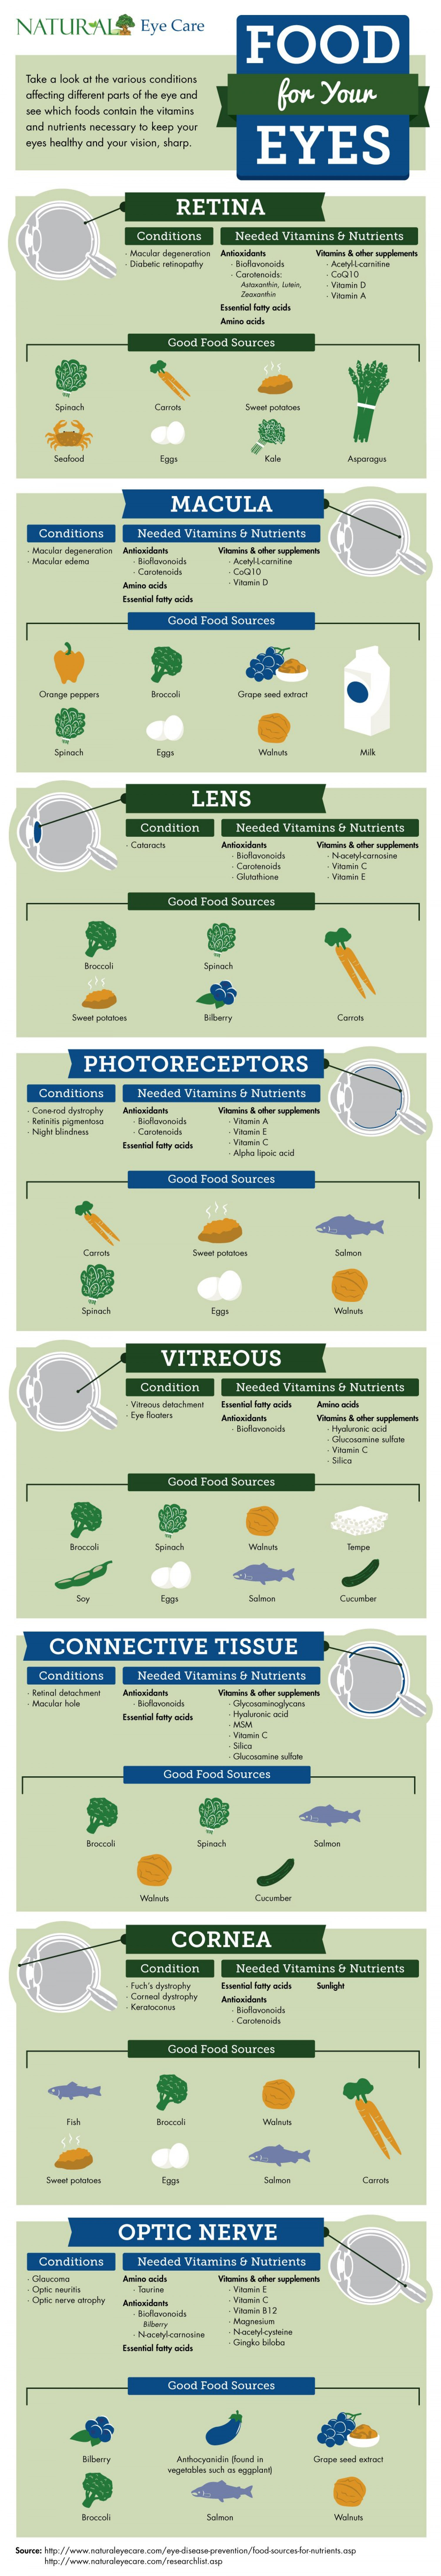 Food for your Eyes Infographic